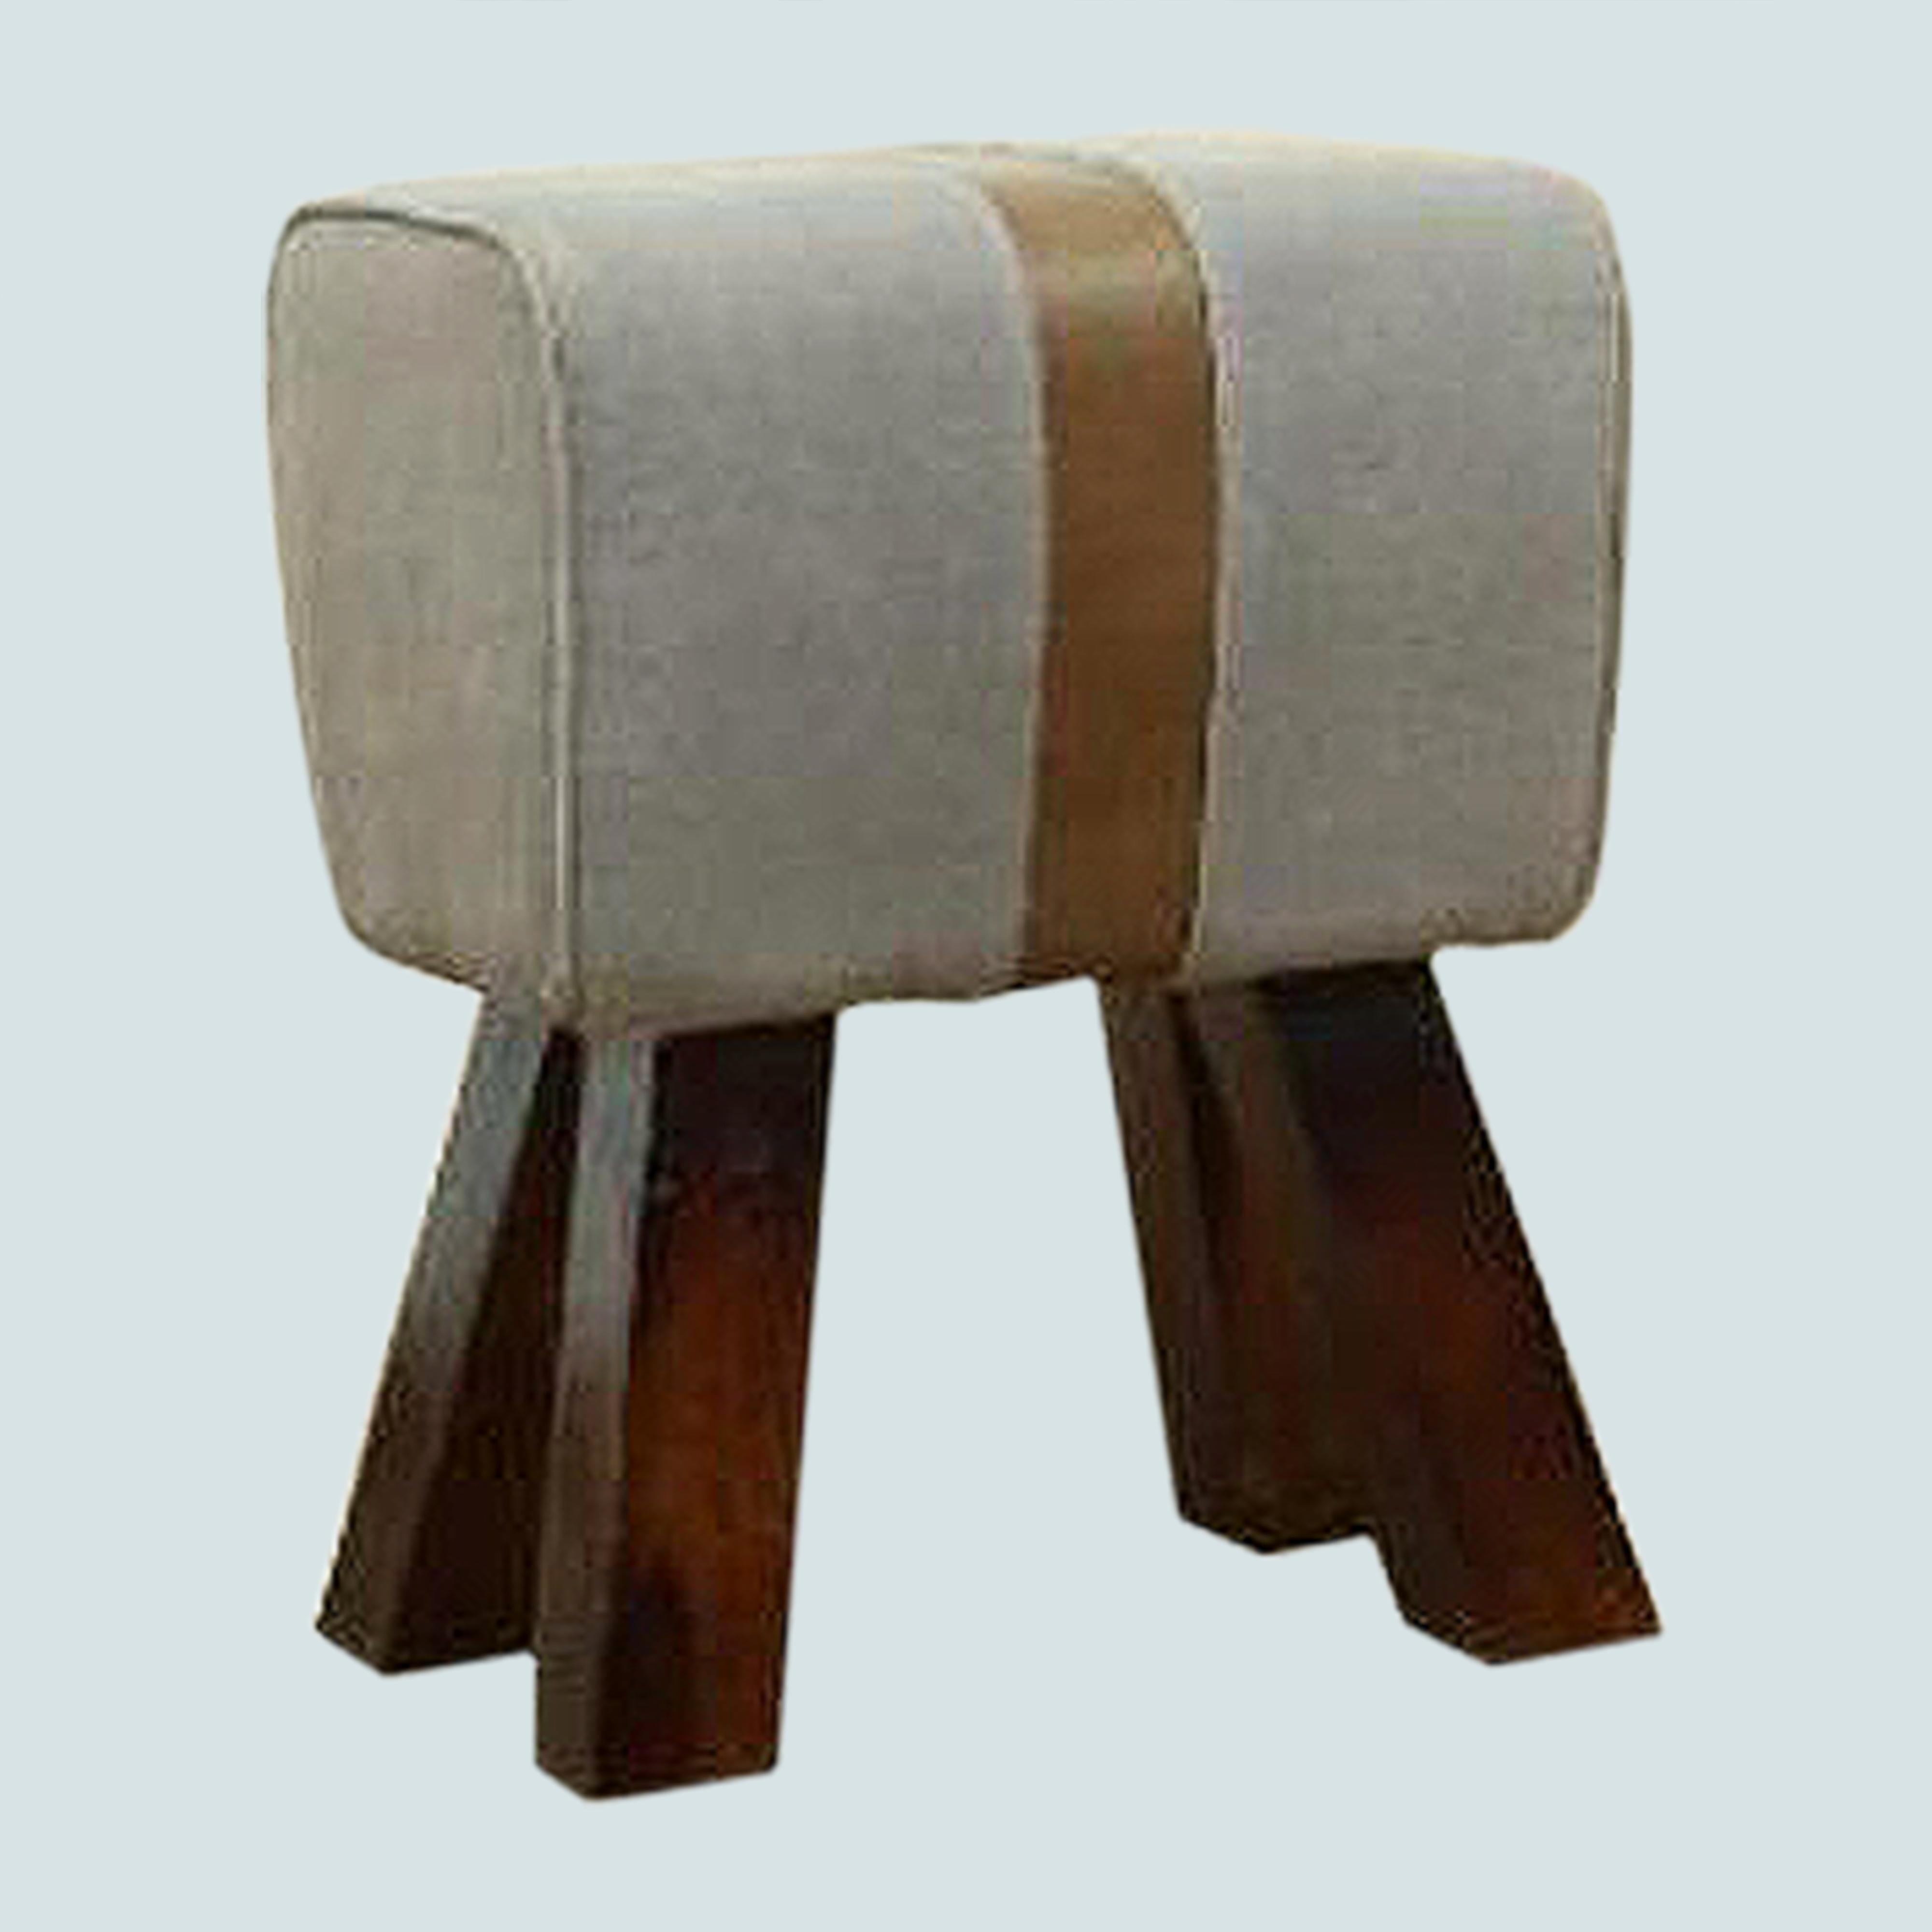 Small Foot Rest Leather Footrest Wooden Foot Stool Faux Upholstered Footstool, Ottoman Footrest